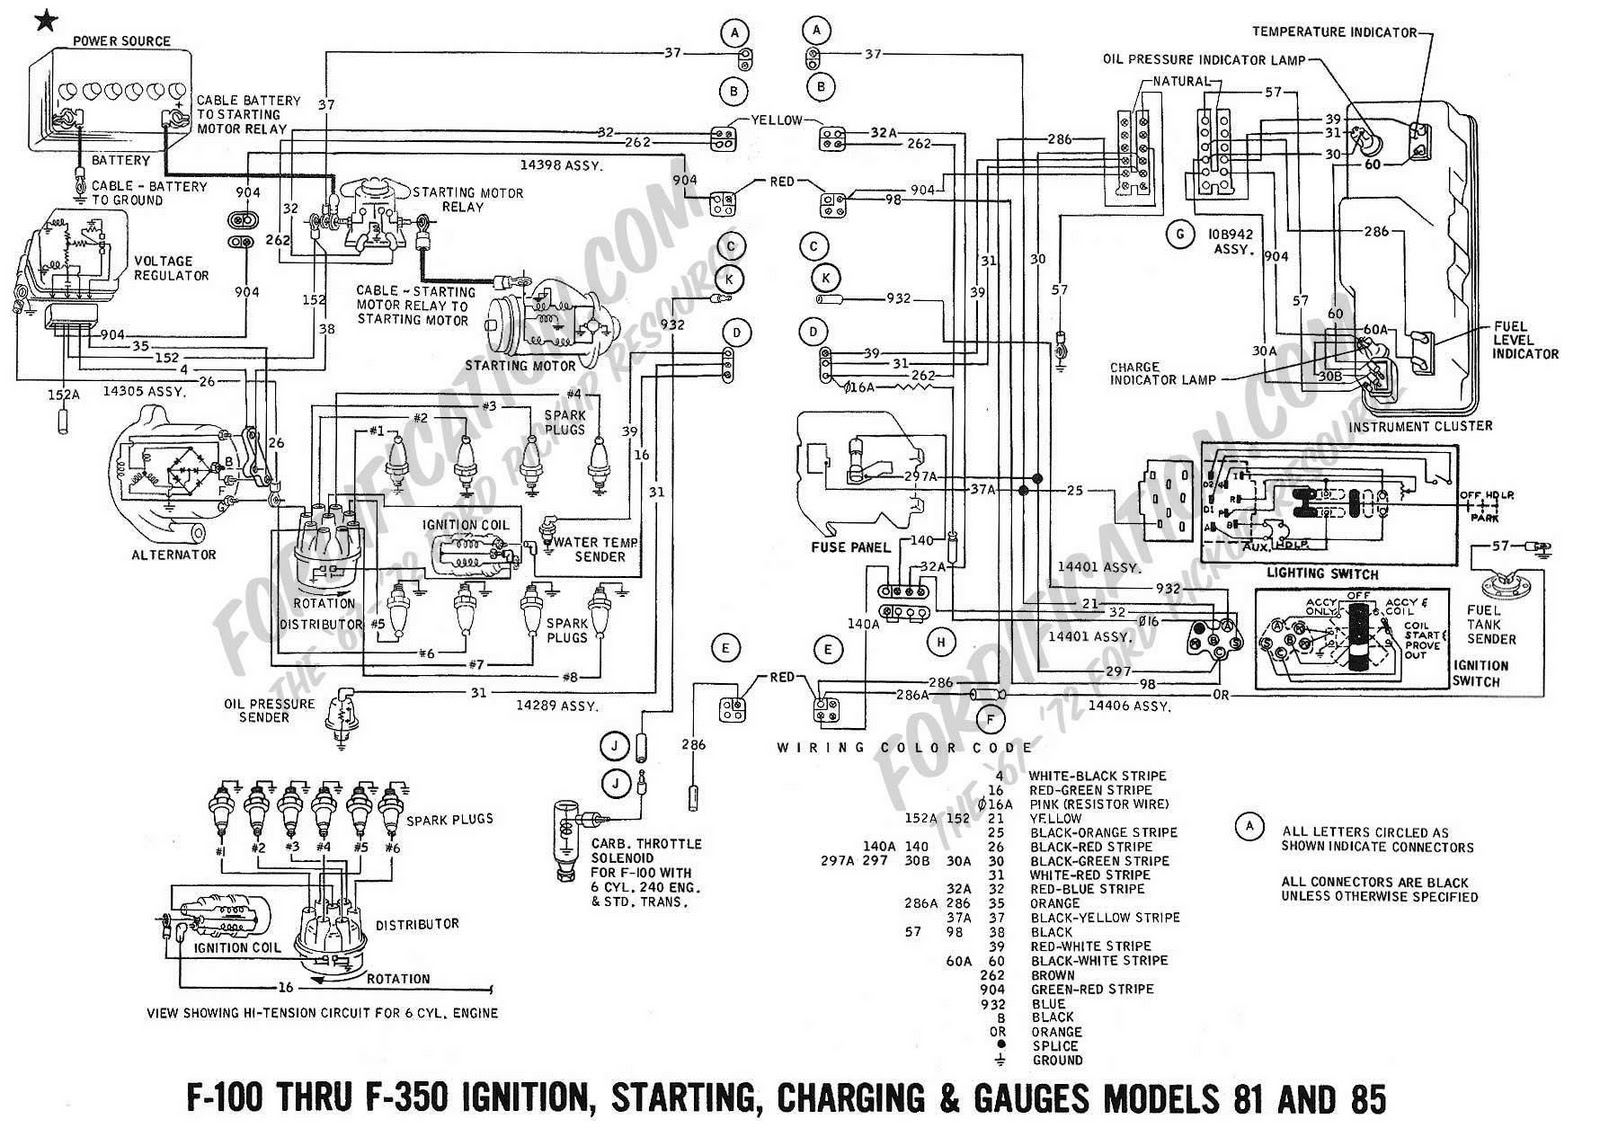 67 Ford F100 Alternator Wiring Diagram Schematic Diagrams 1967 Pontiac Firebird 1975 F 250 Portal 1966 Mustang F250